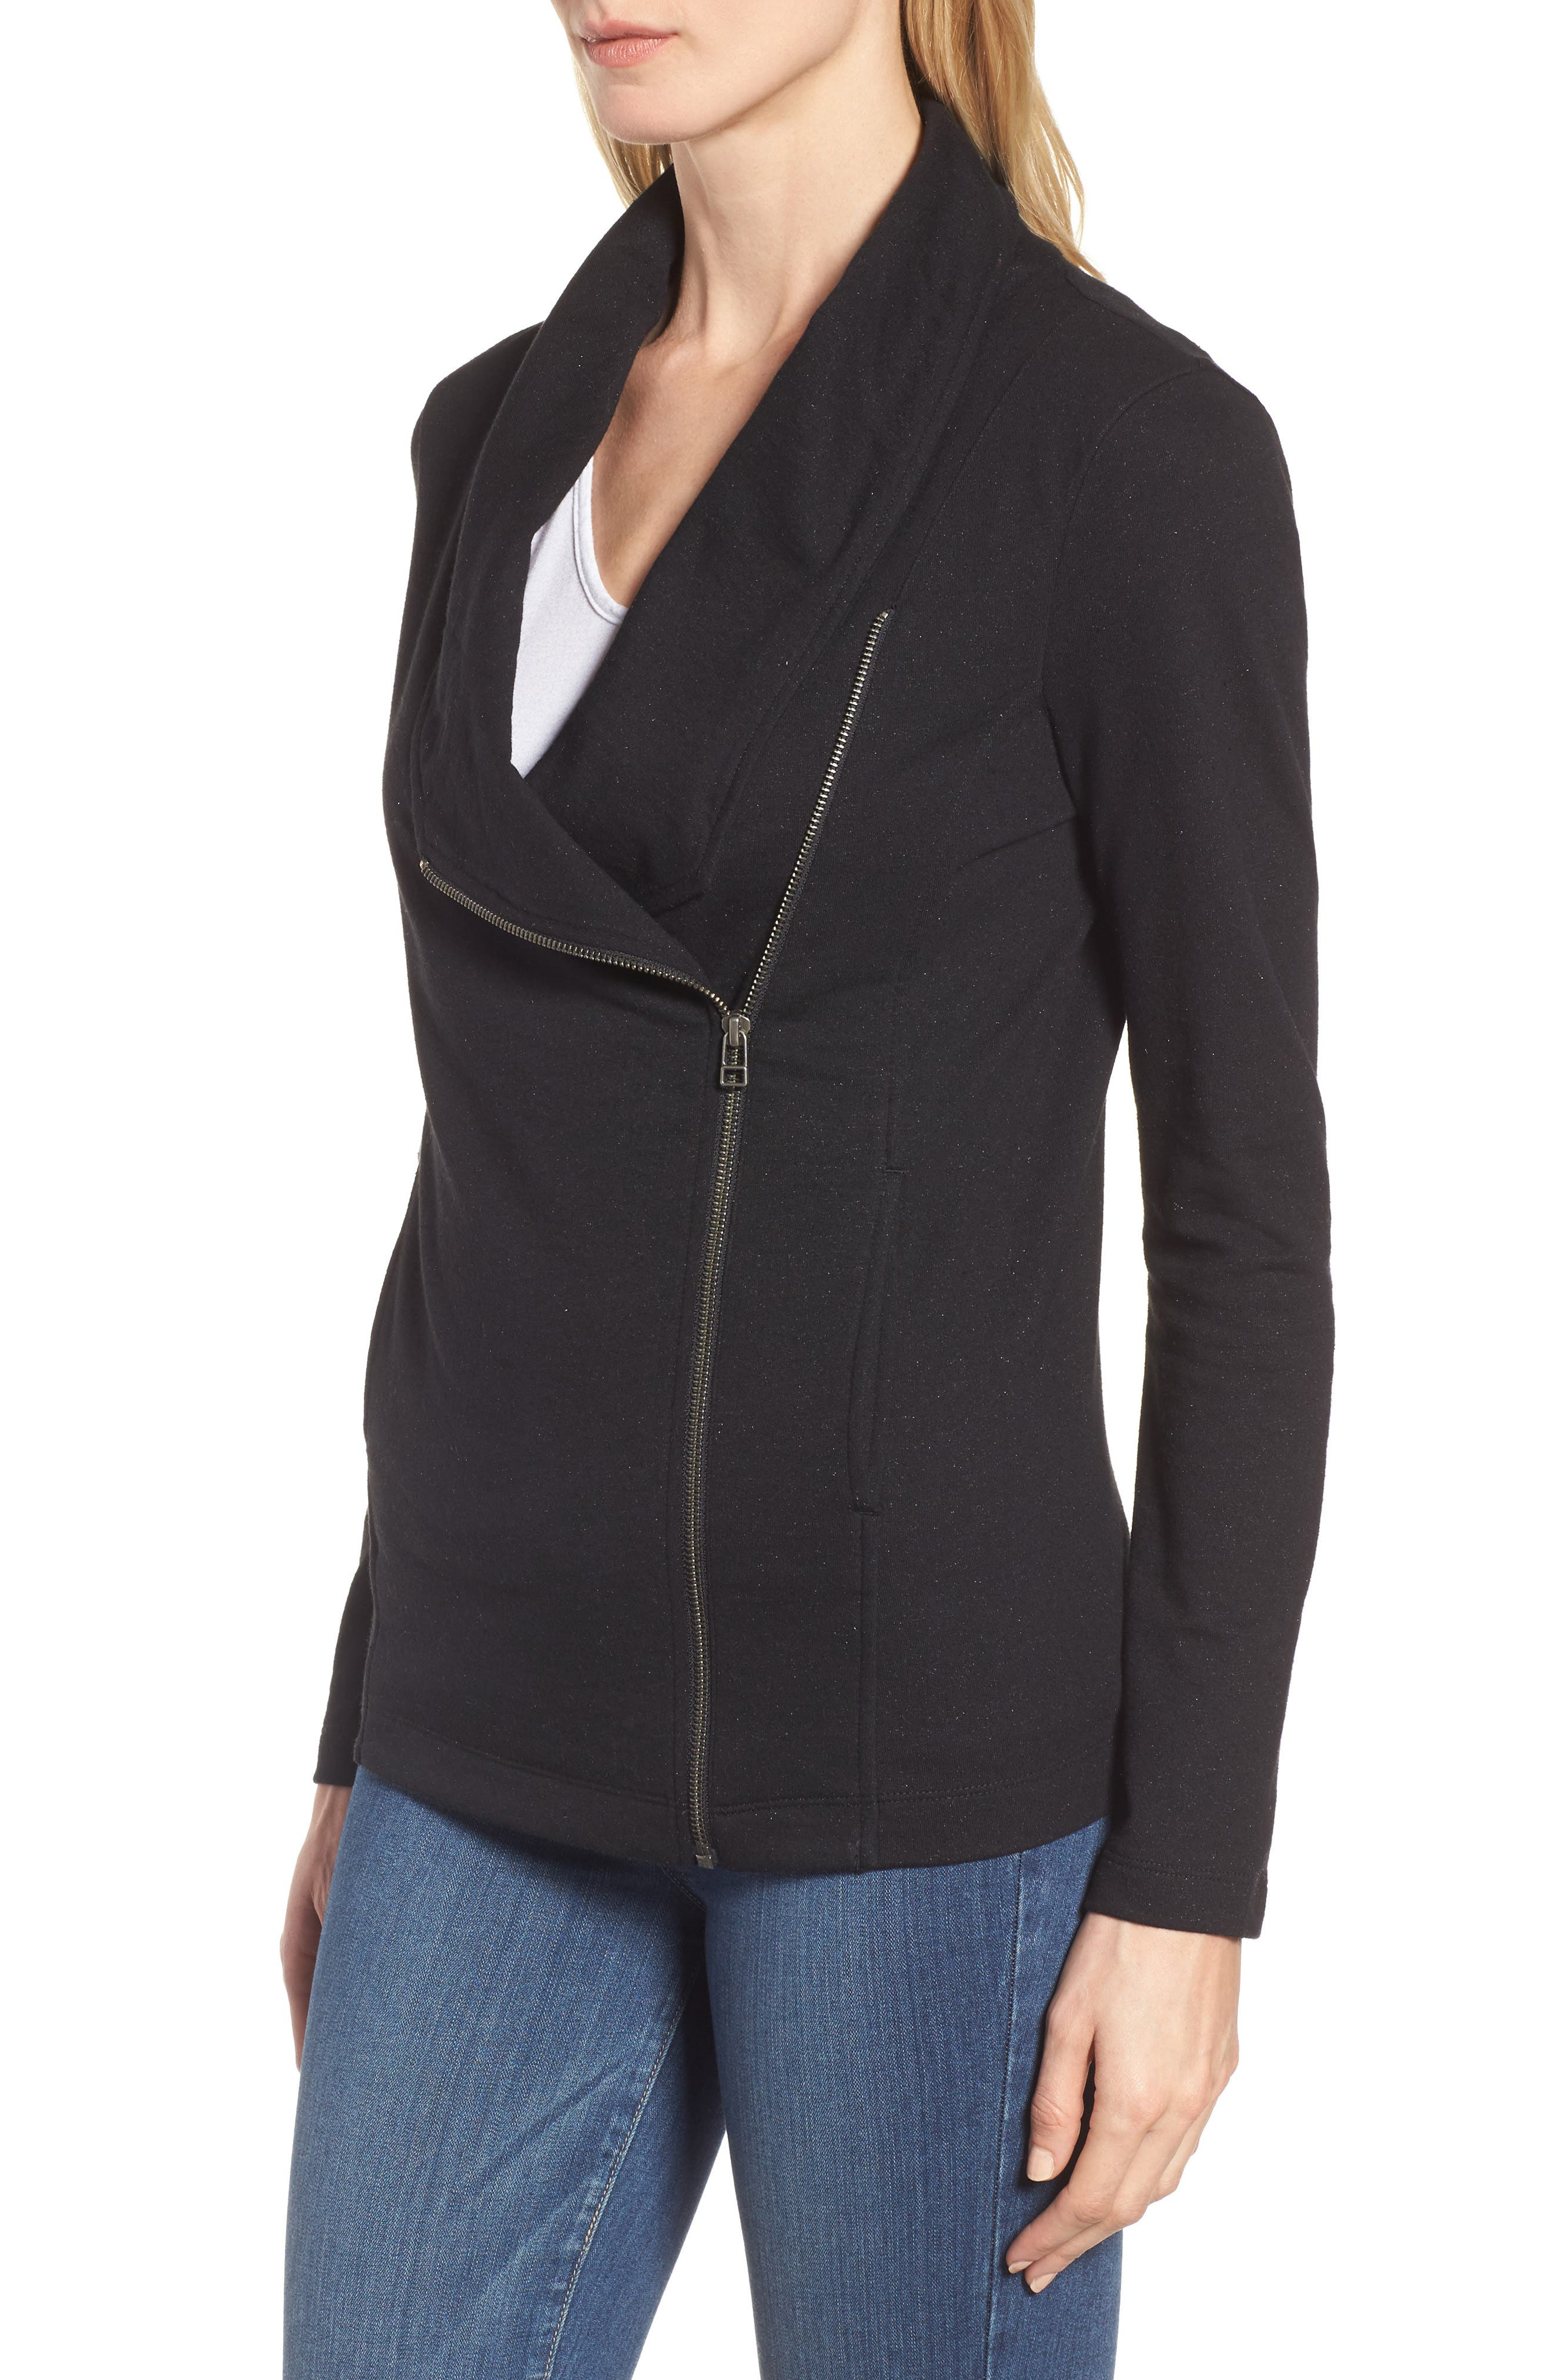 Stella Knit Jacket,                             Alternate thumbnail 3, color,                             001